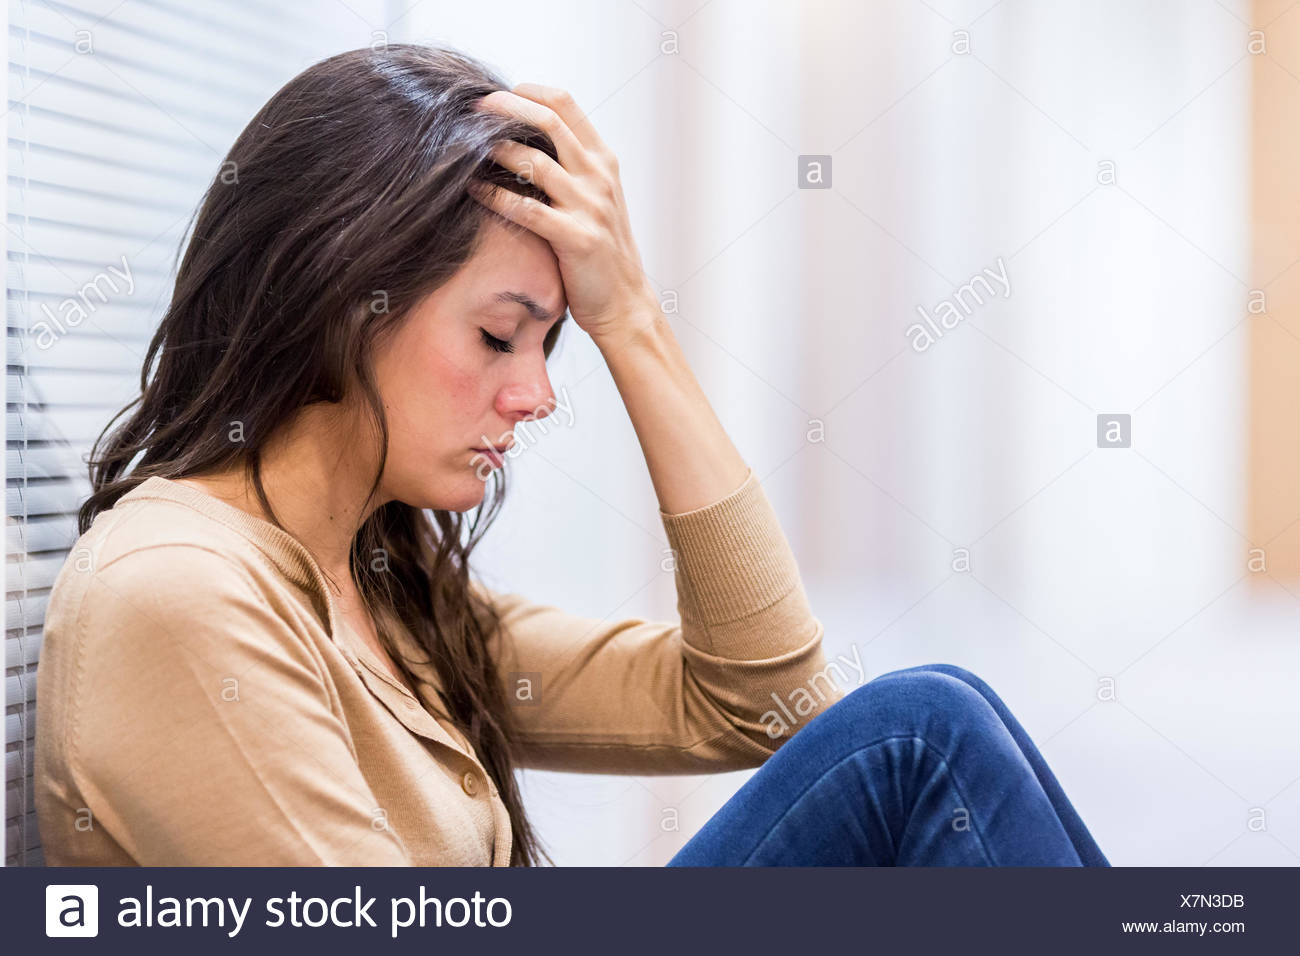 Tired woman. - Stock Image